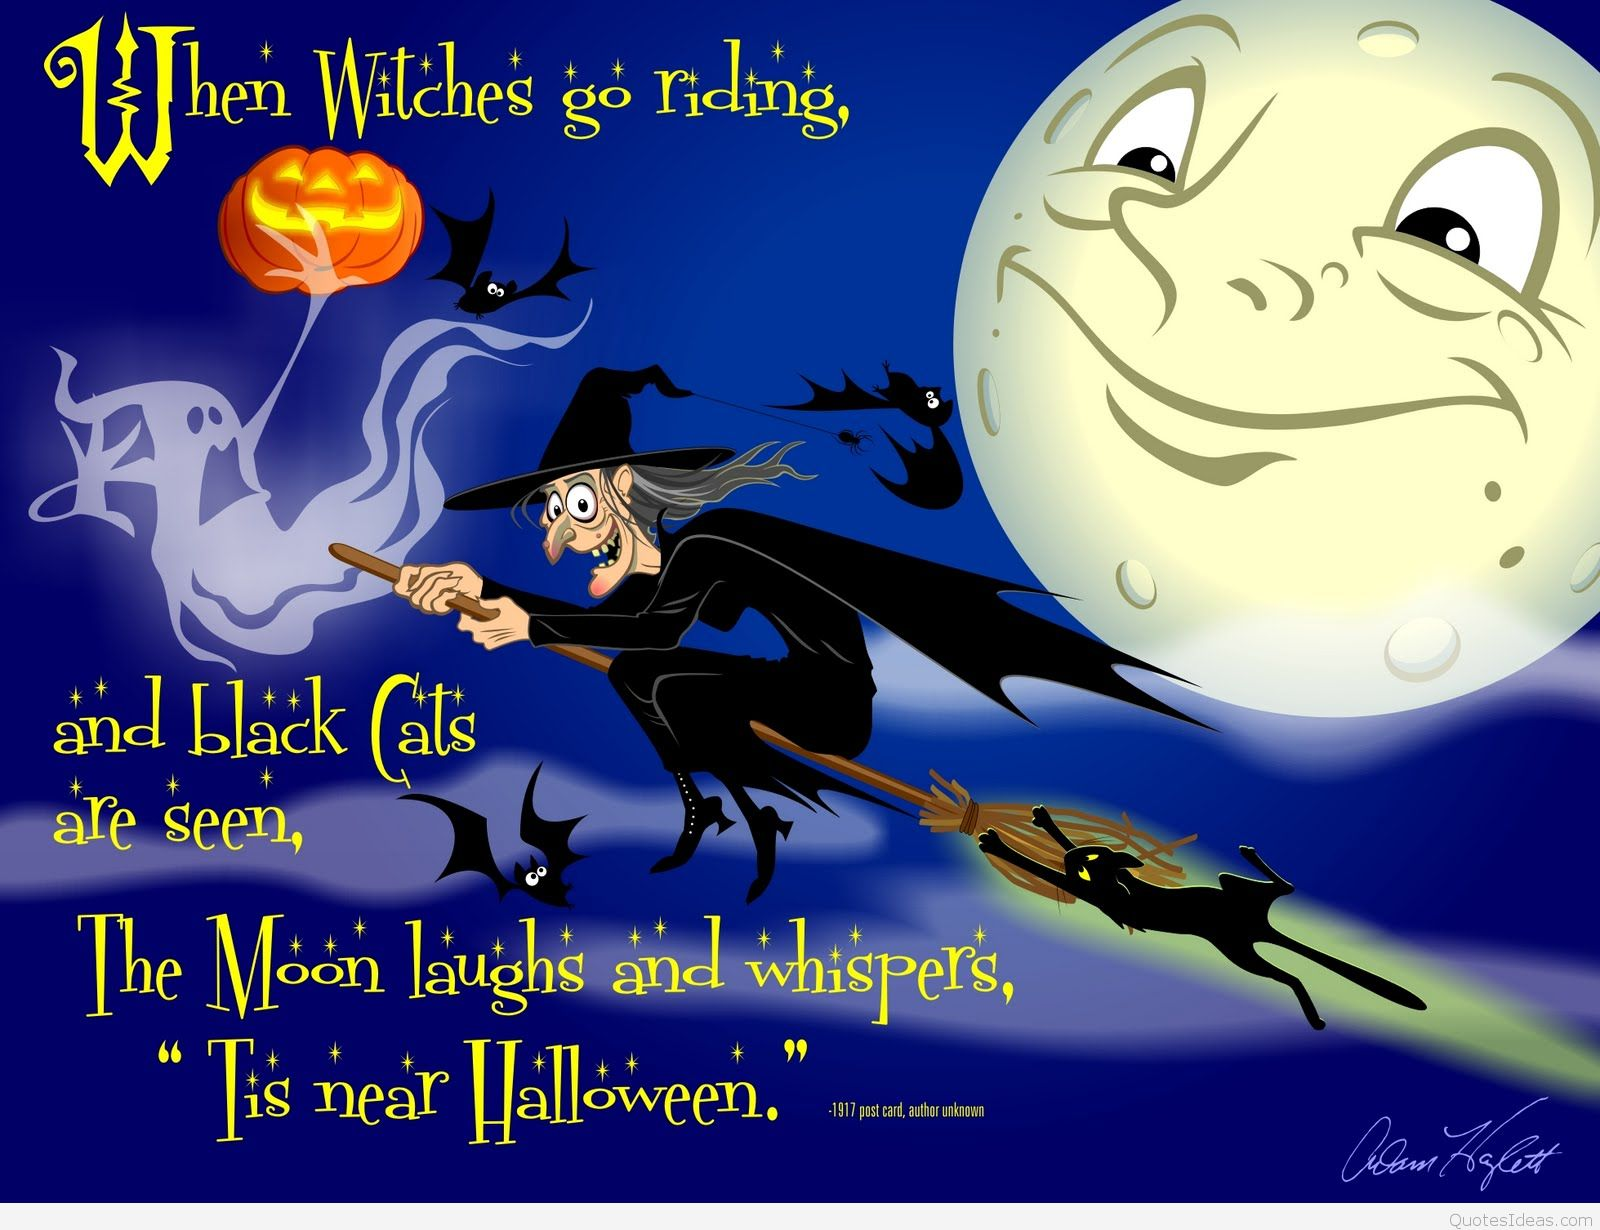 halloween_vintage_postcard_witch_face_ghost_hd-wallpaper-1537009